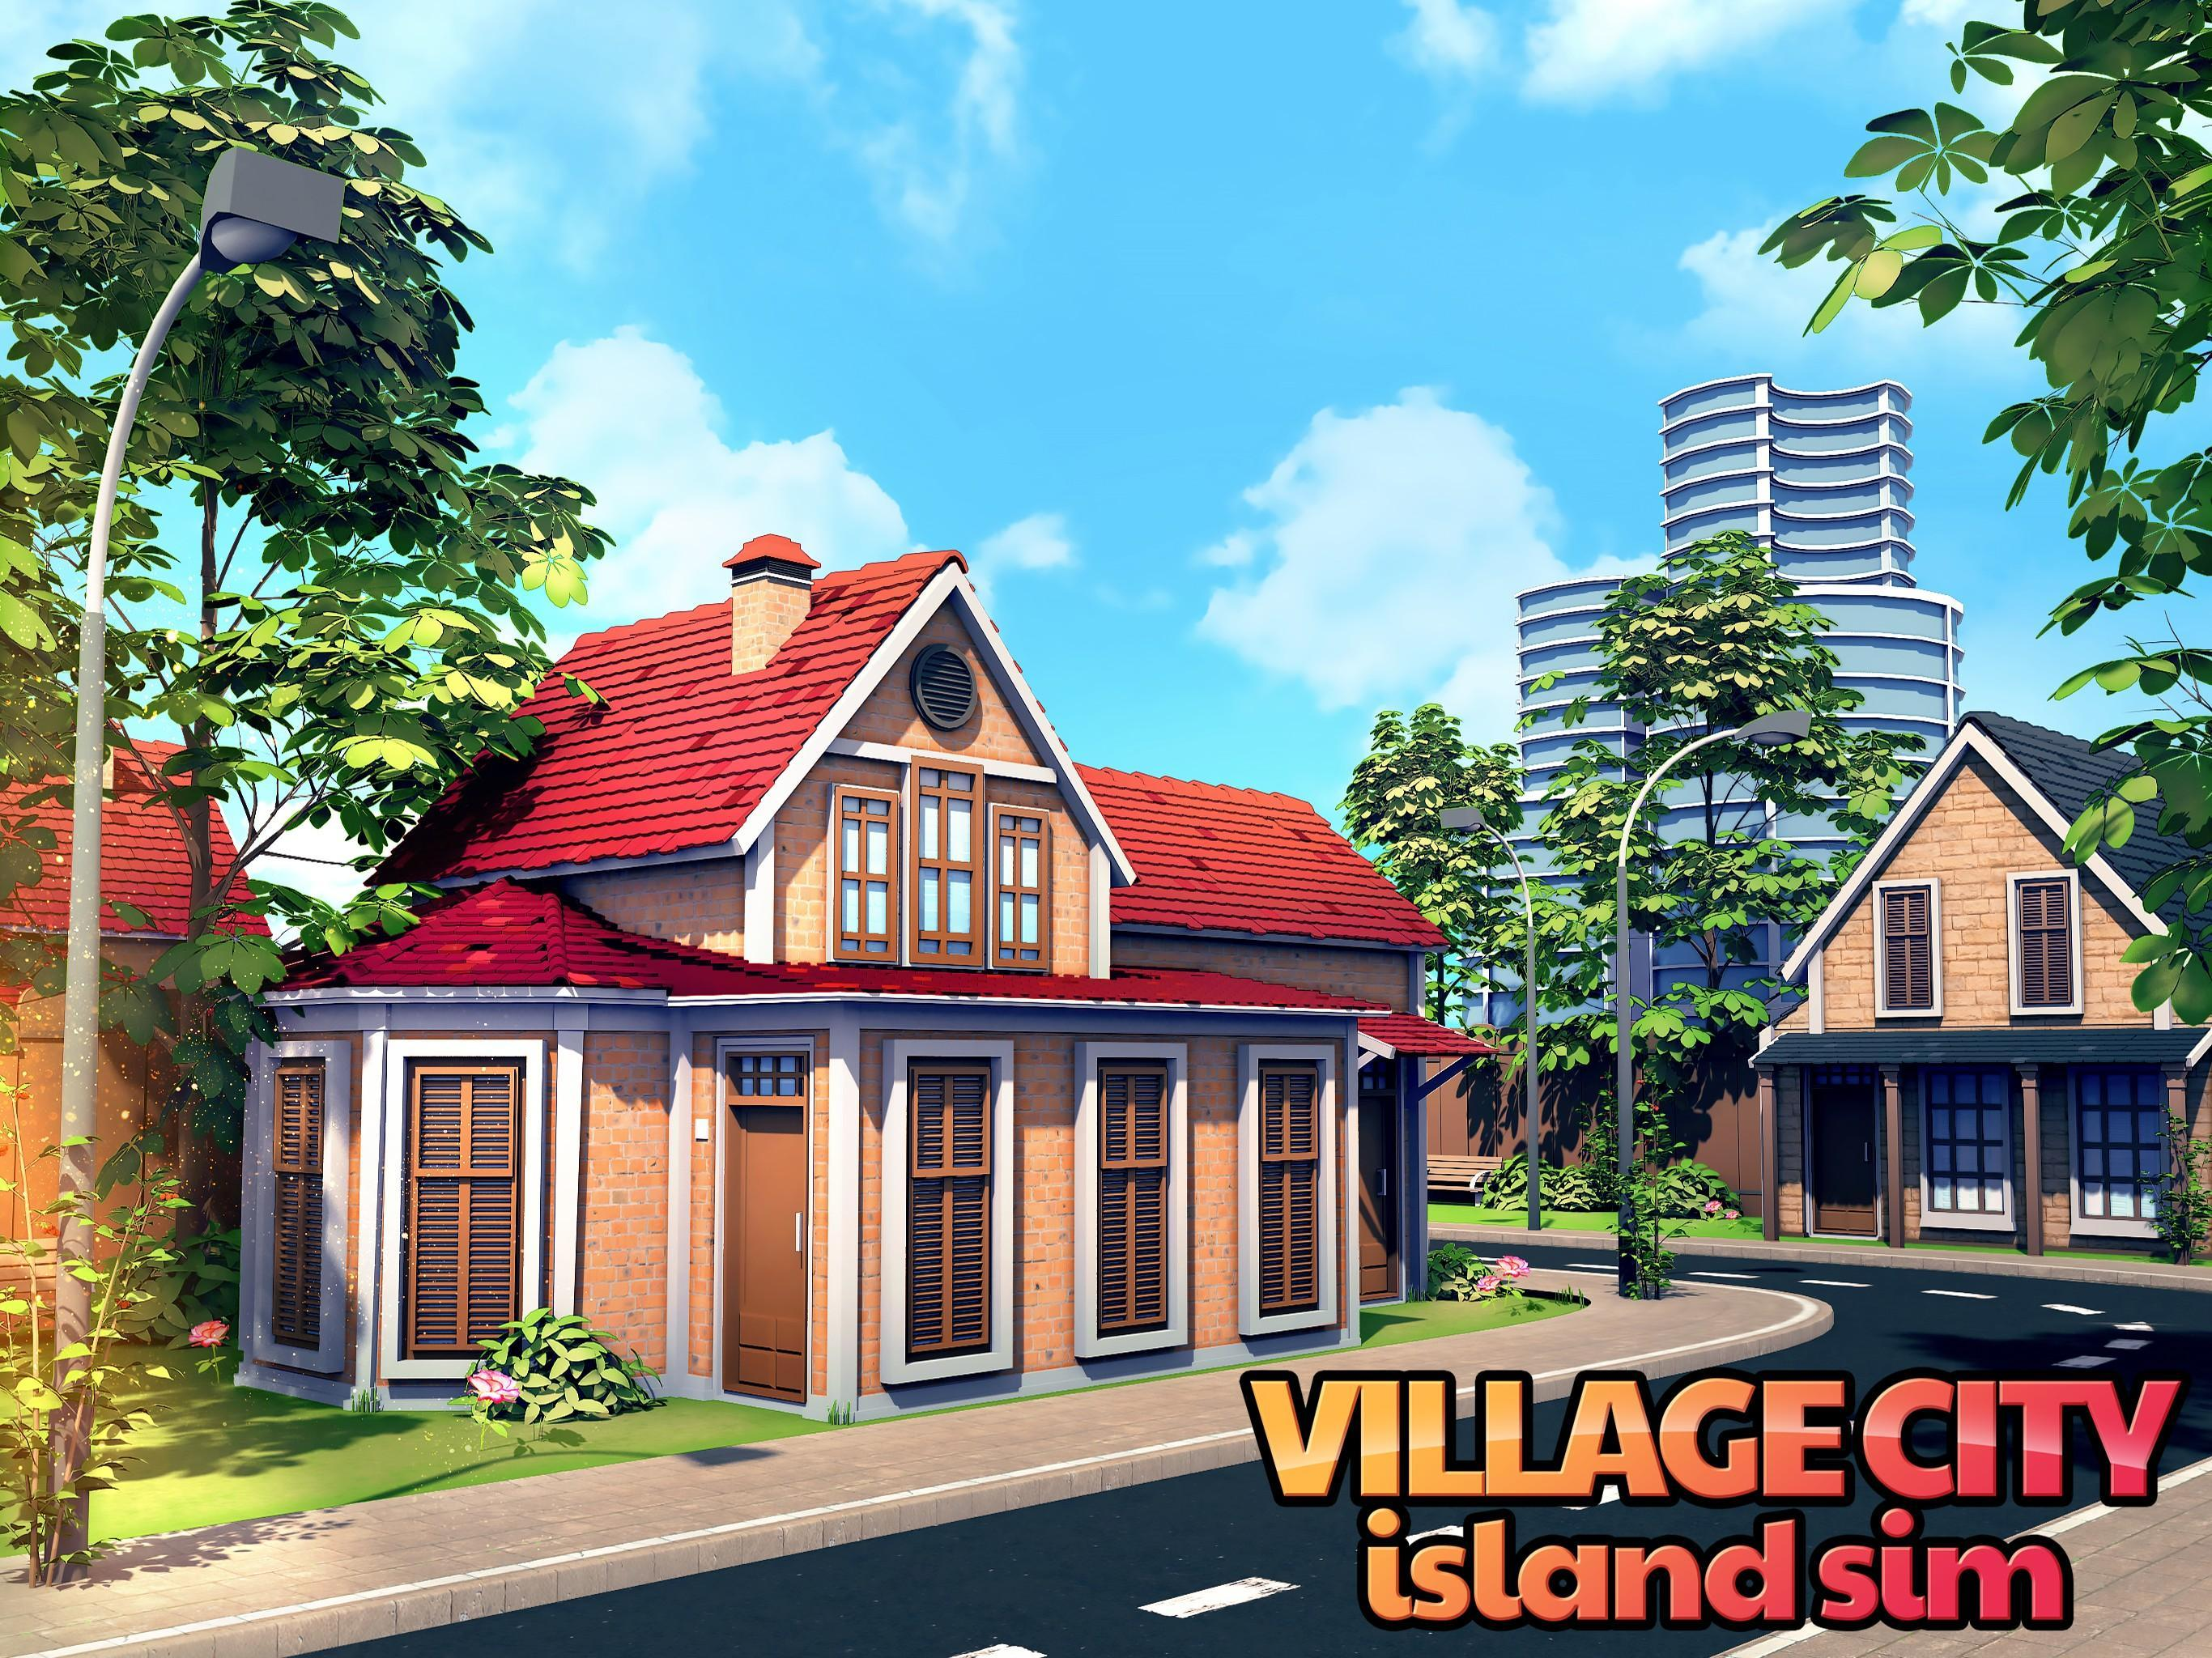 Download game gratis download game gratis Village City - Island Simulation v1.9.5